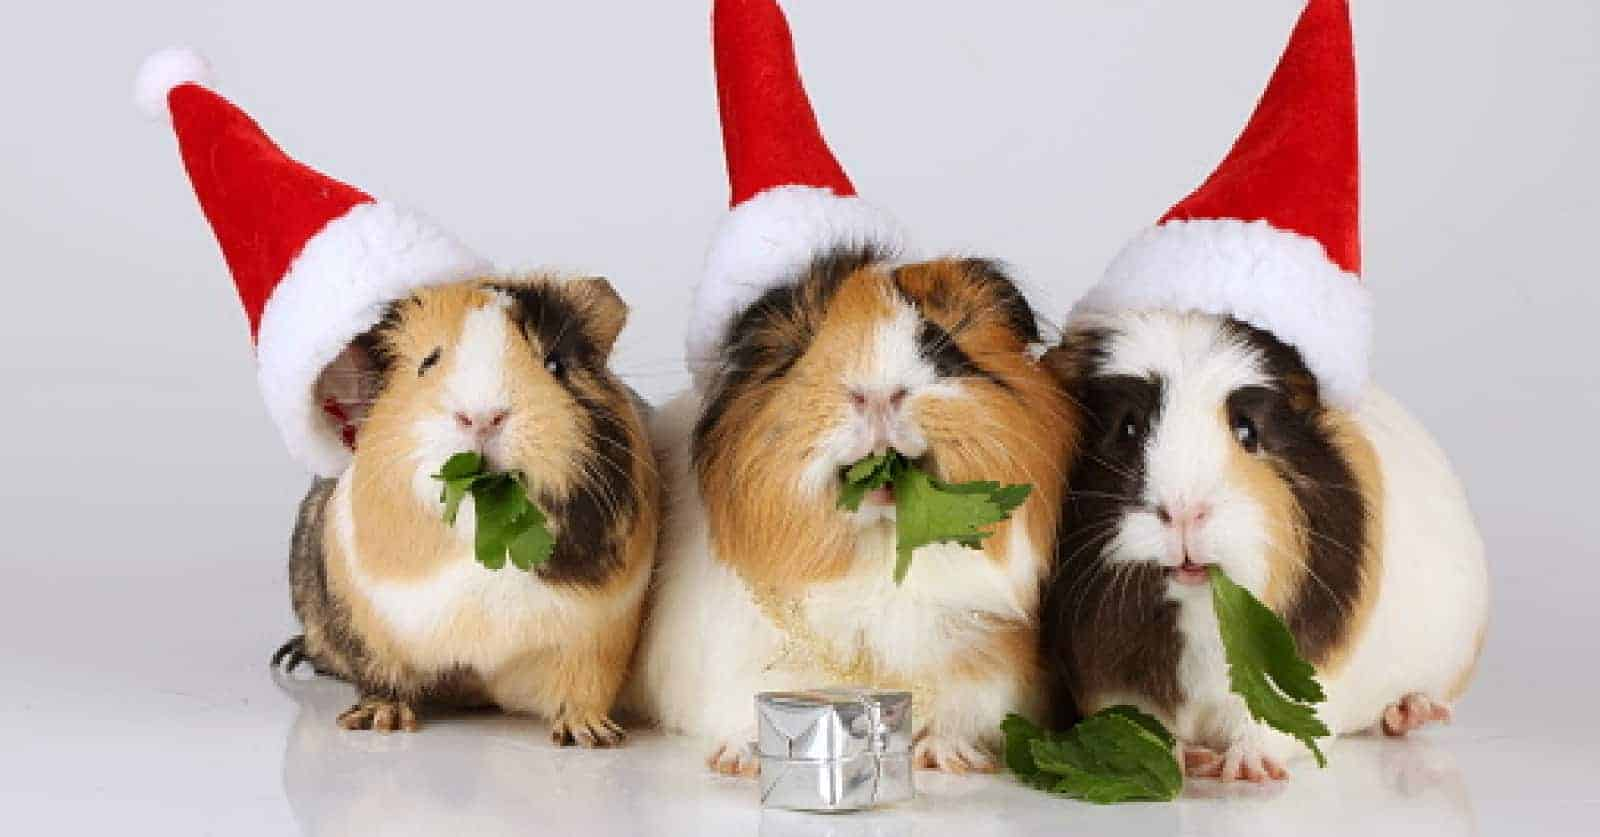 Looking for some cute Christmas-Related Names for Guinea Pigs? Check out 100 that will have you feeling the holiday cheer in no time!